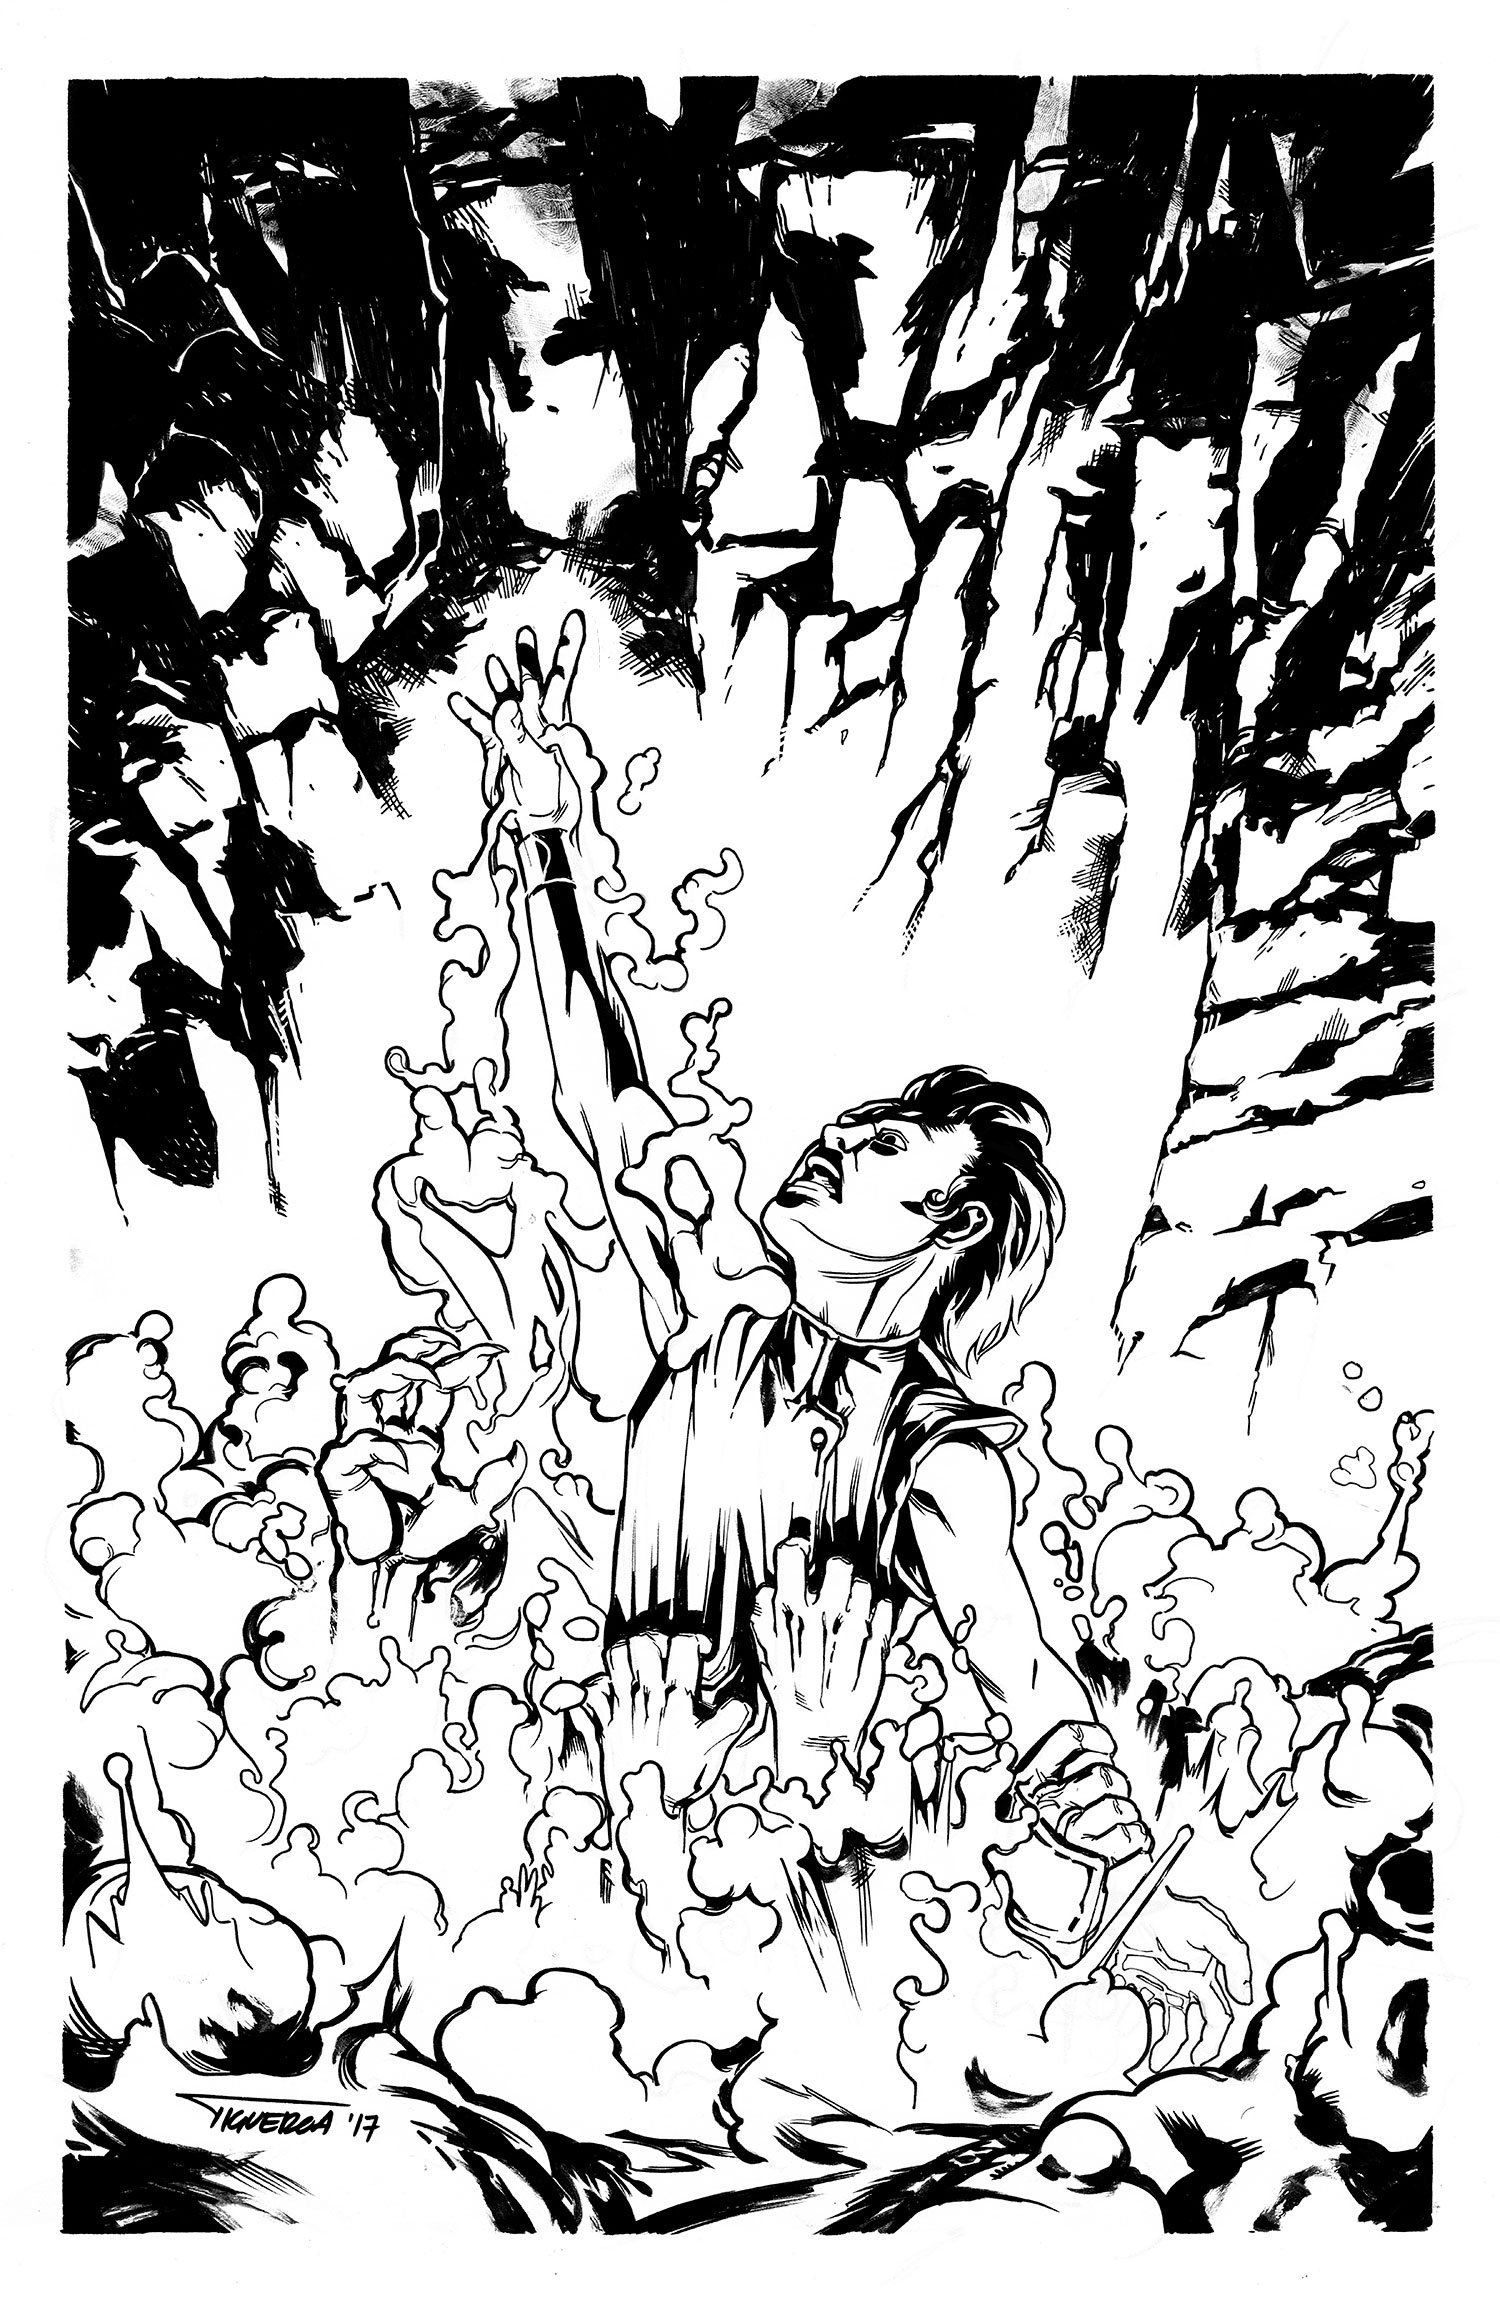 T3-Cover-ink.jpg